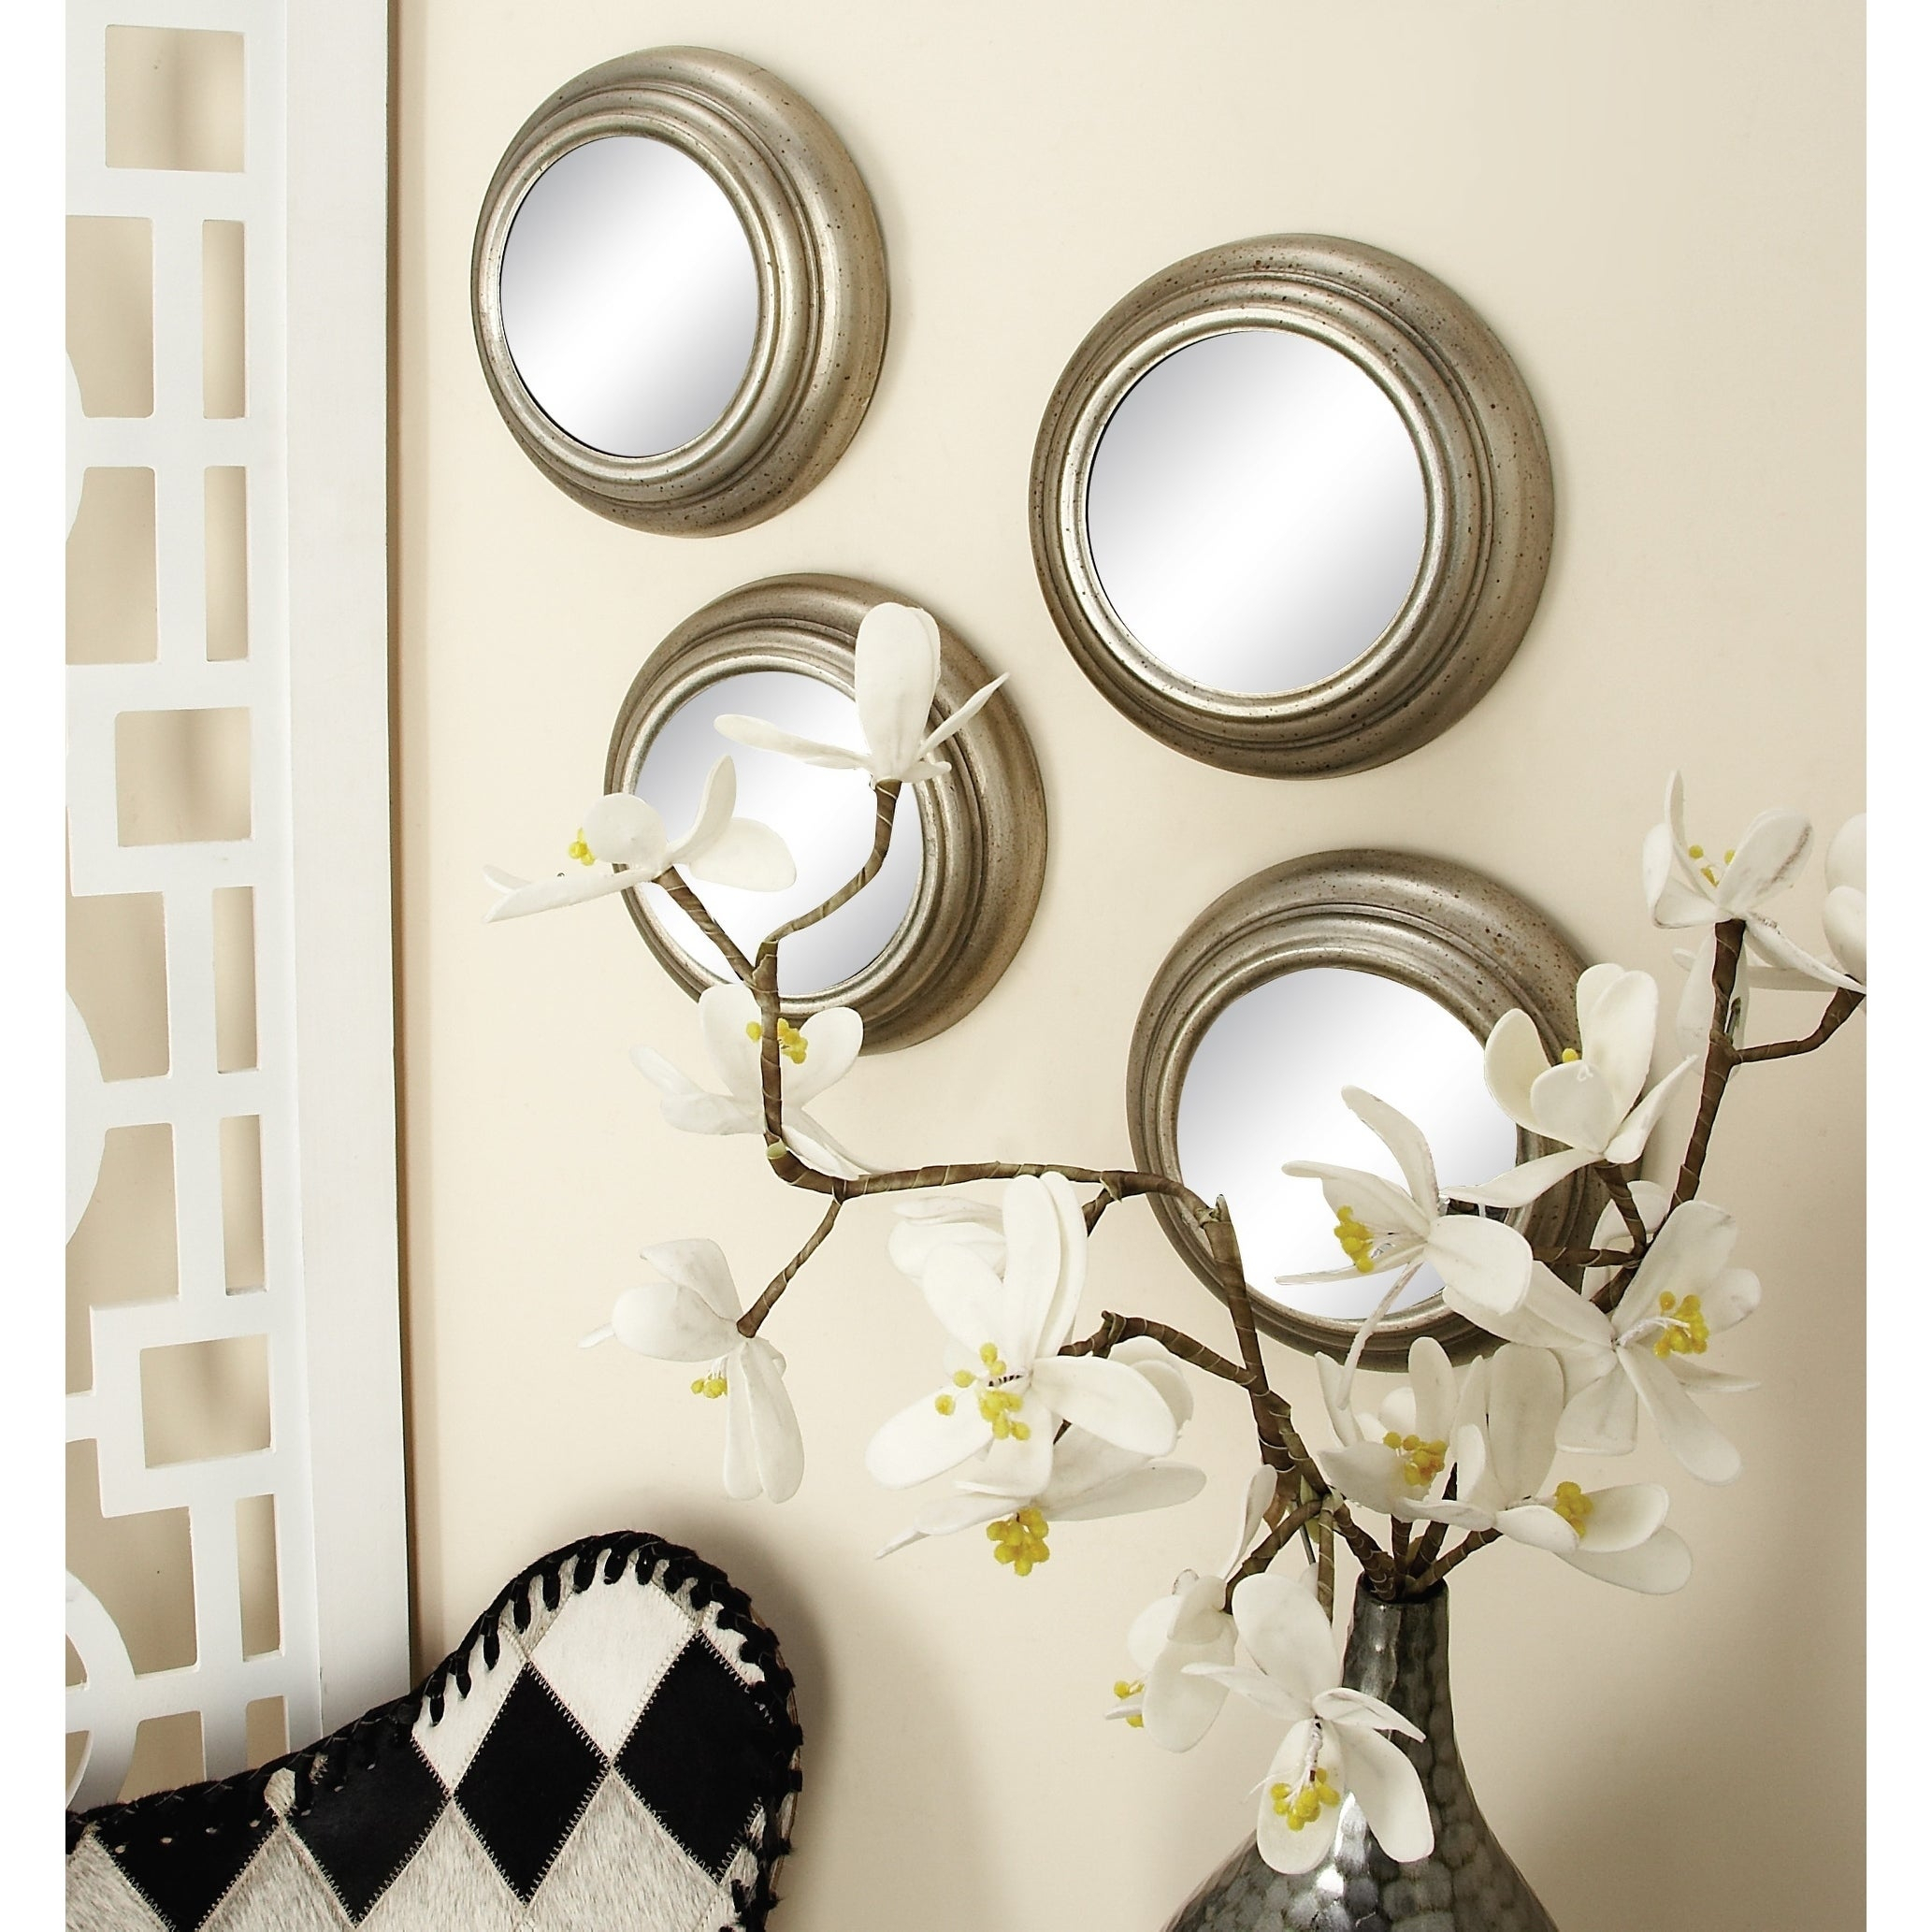 Set Of 12 Contemporary Round Decorative Wall Mirrorsstudio 350 – Silver With Decorative Round Wall Mirrors (Image 18 of 20)